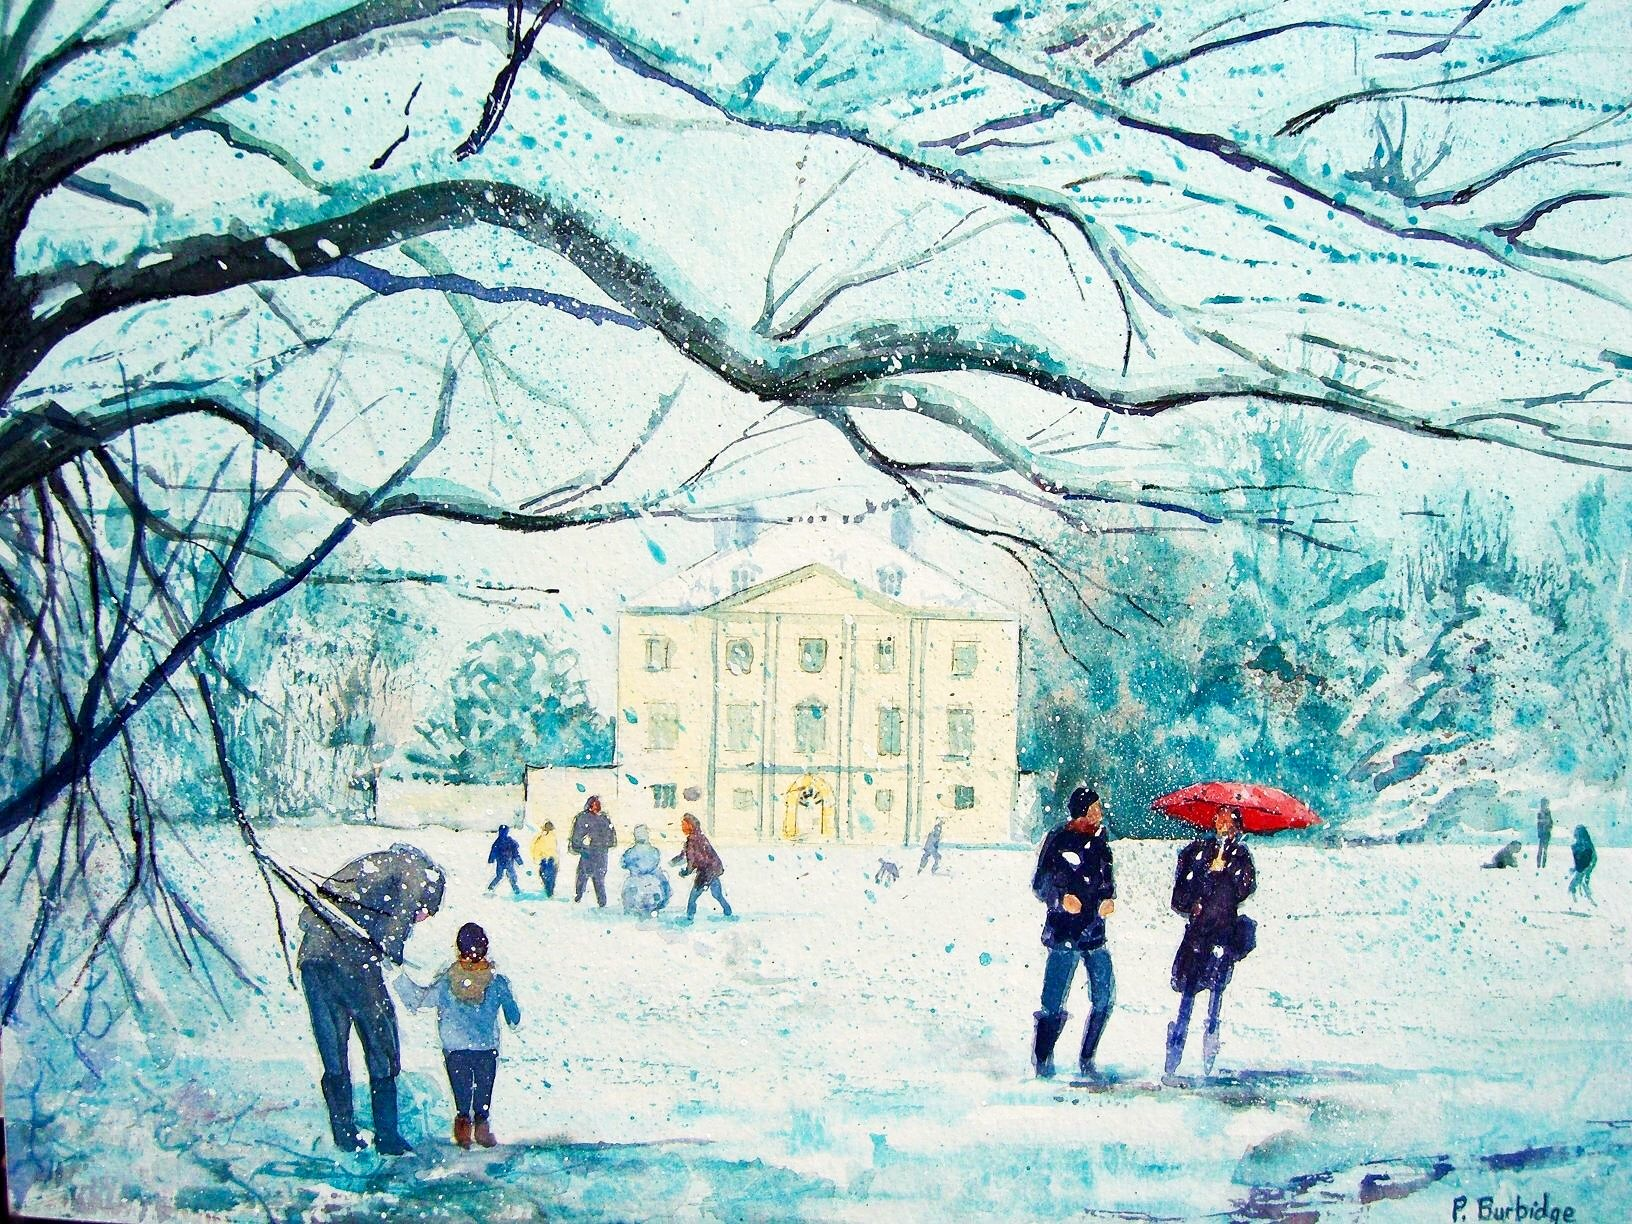 Snow Marble Hill Park. Sold